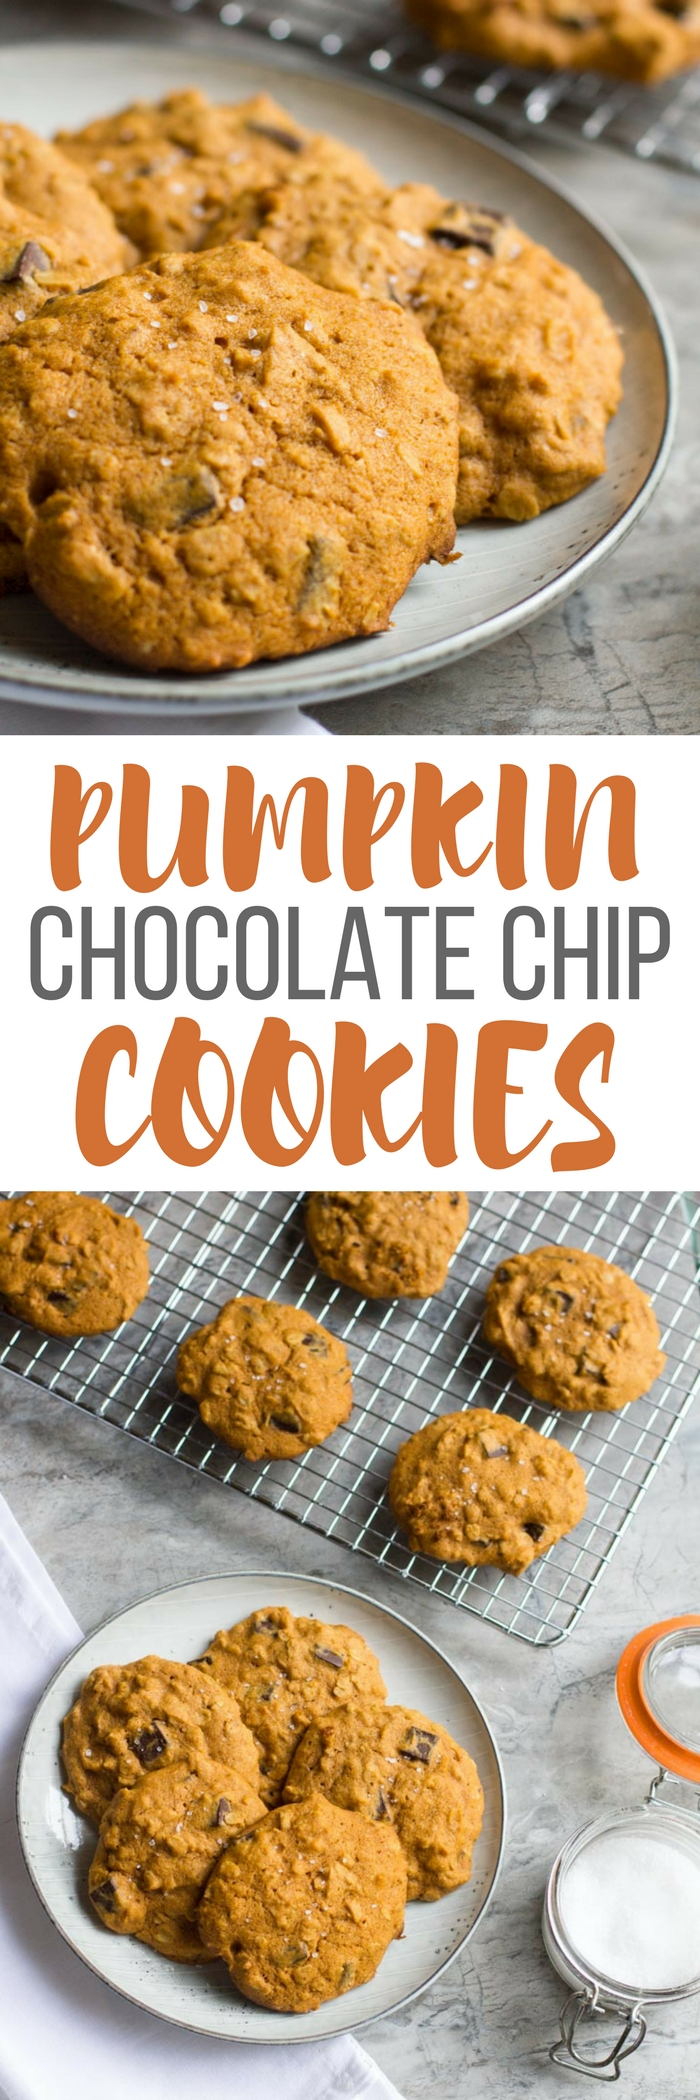 Pumpkin Oatmeal Cookies with Dark Chocolate and Sea Salt are the best way to celebrate the fall baking season. Perfect with a cup of coffee or some milk, they make the best snack, dessert or even breakfast!